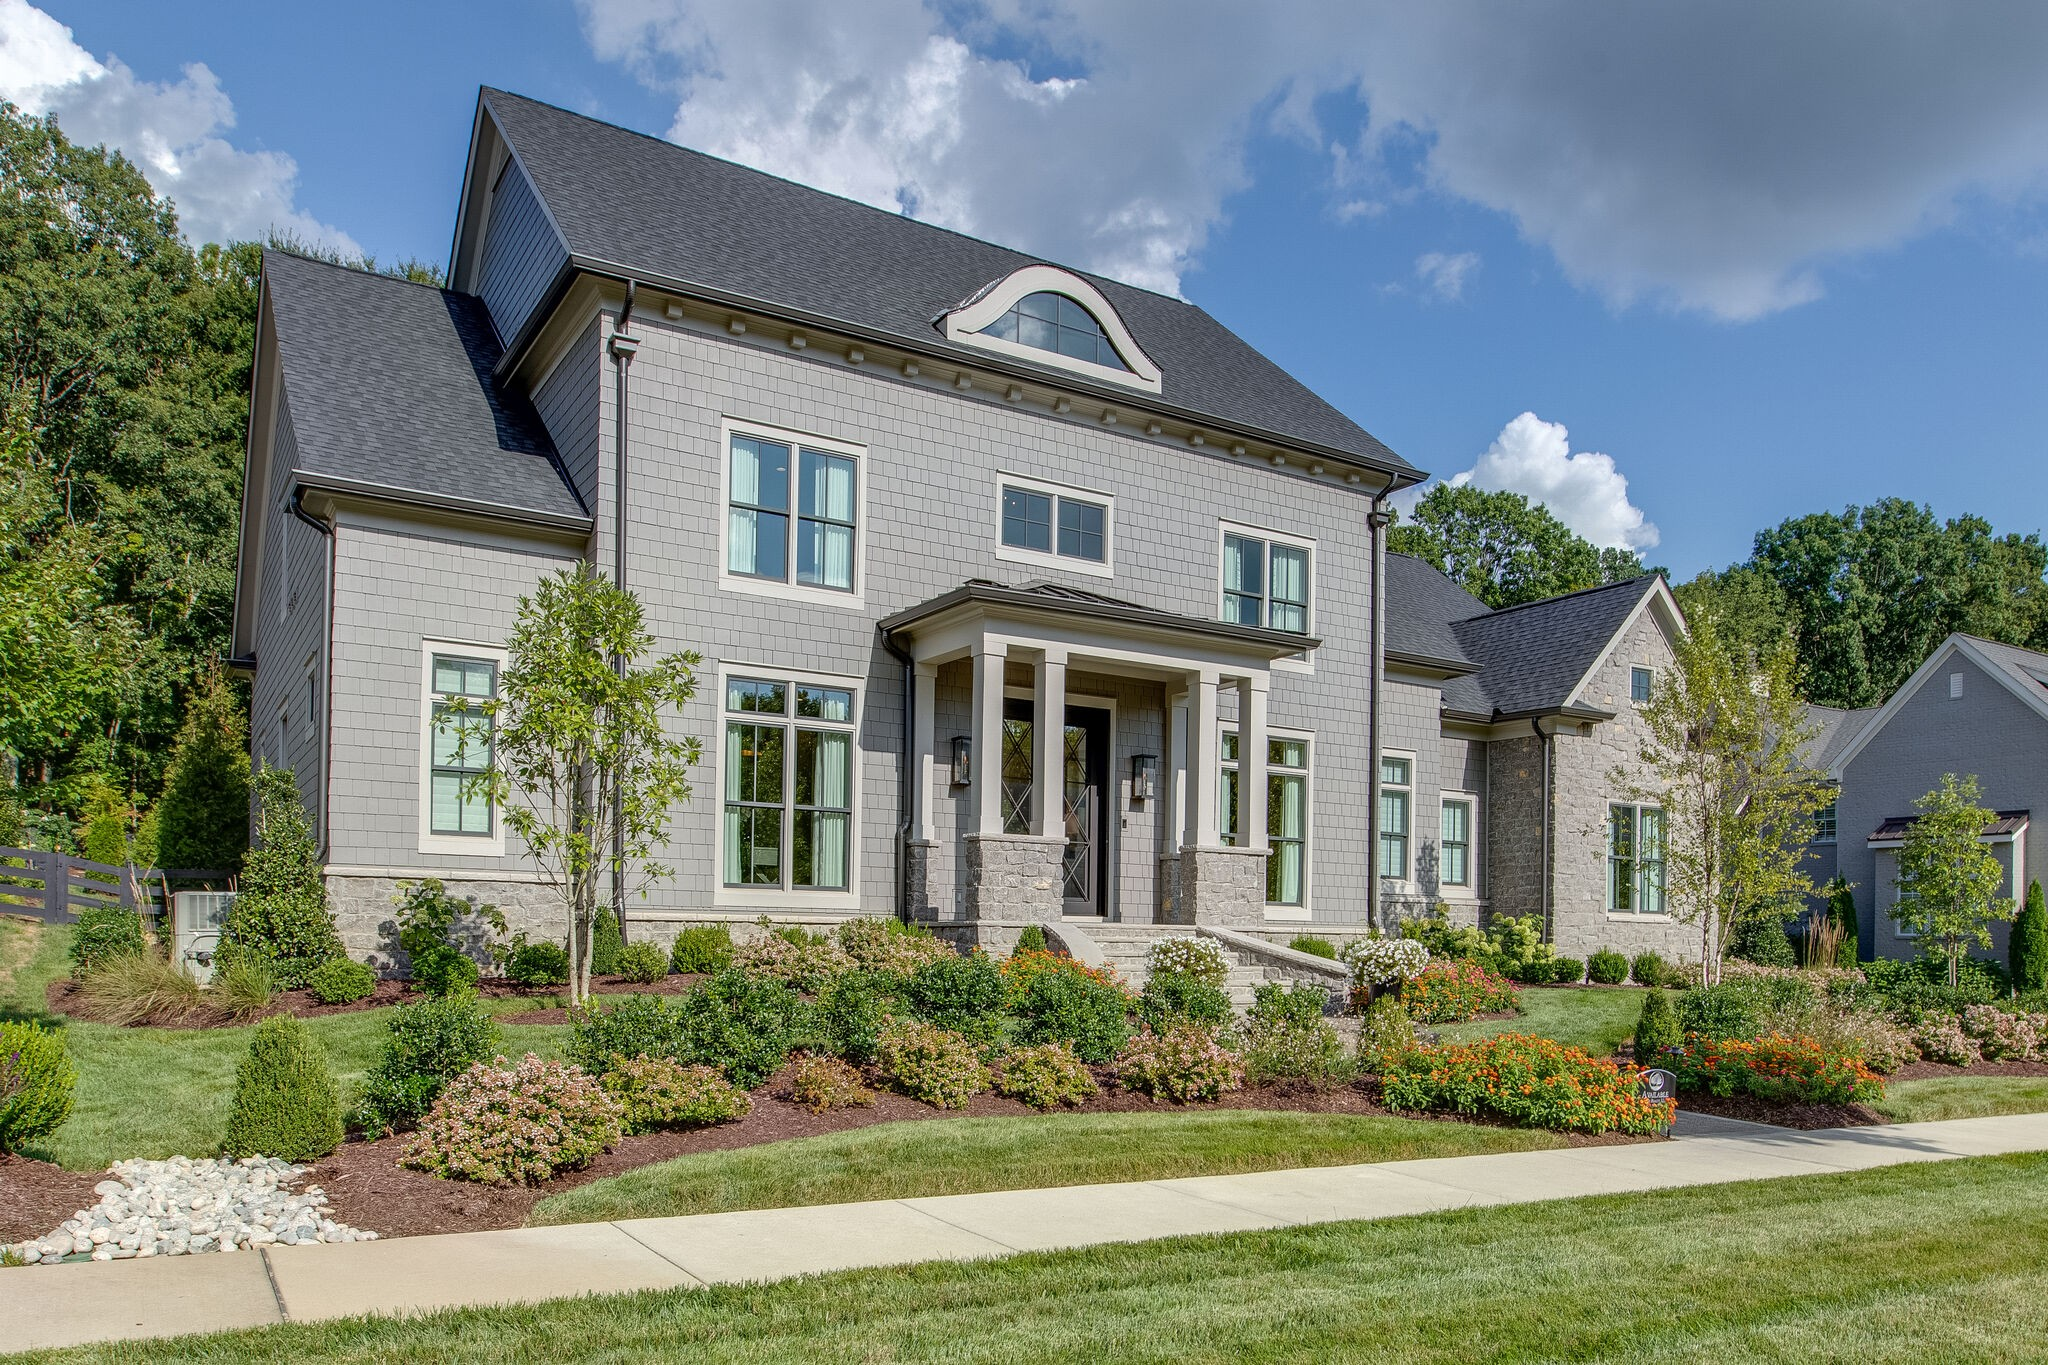 8540 Heirloom Blvd (Lot 7058) Property Photo - College Grove, TN real estate listing